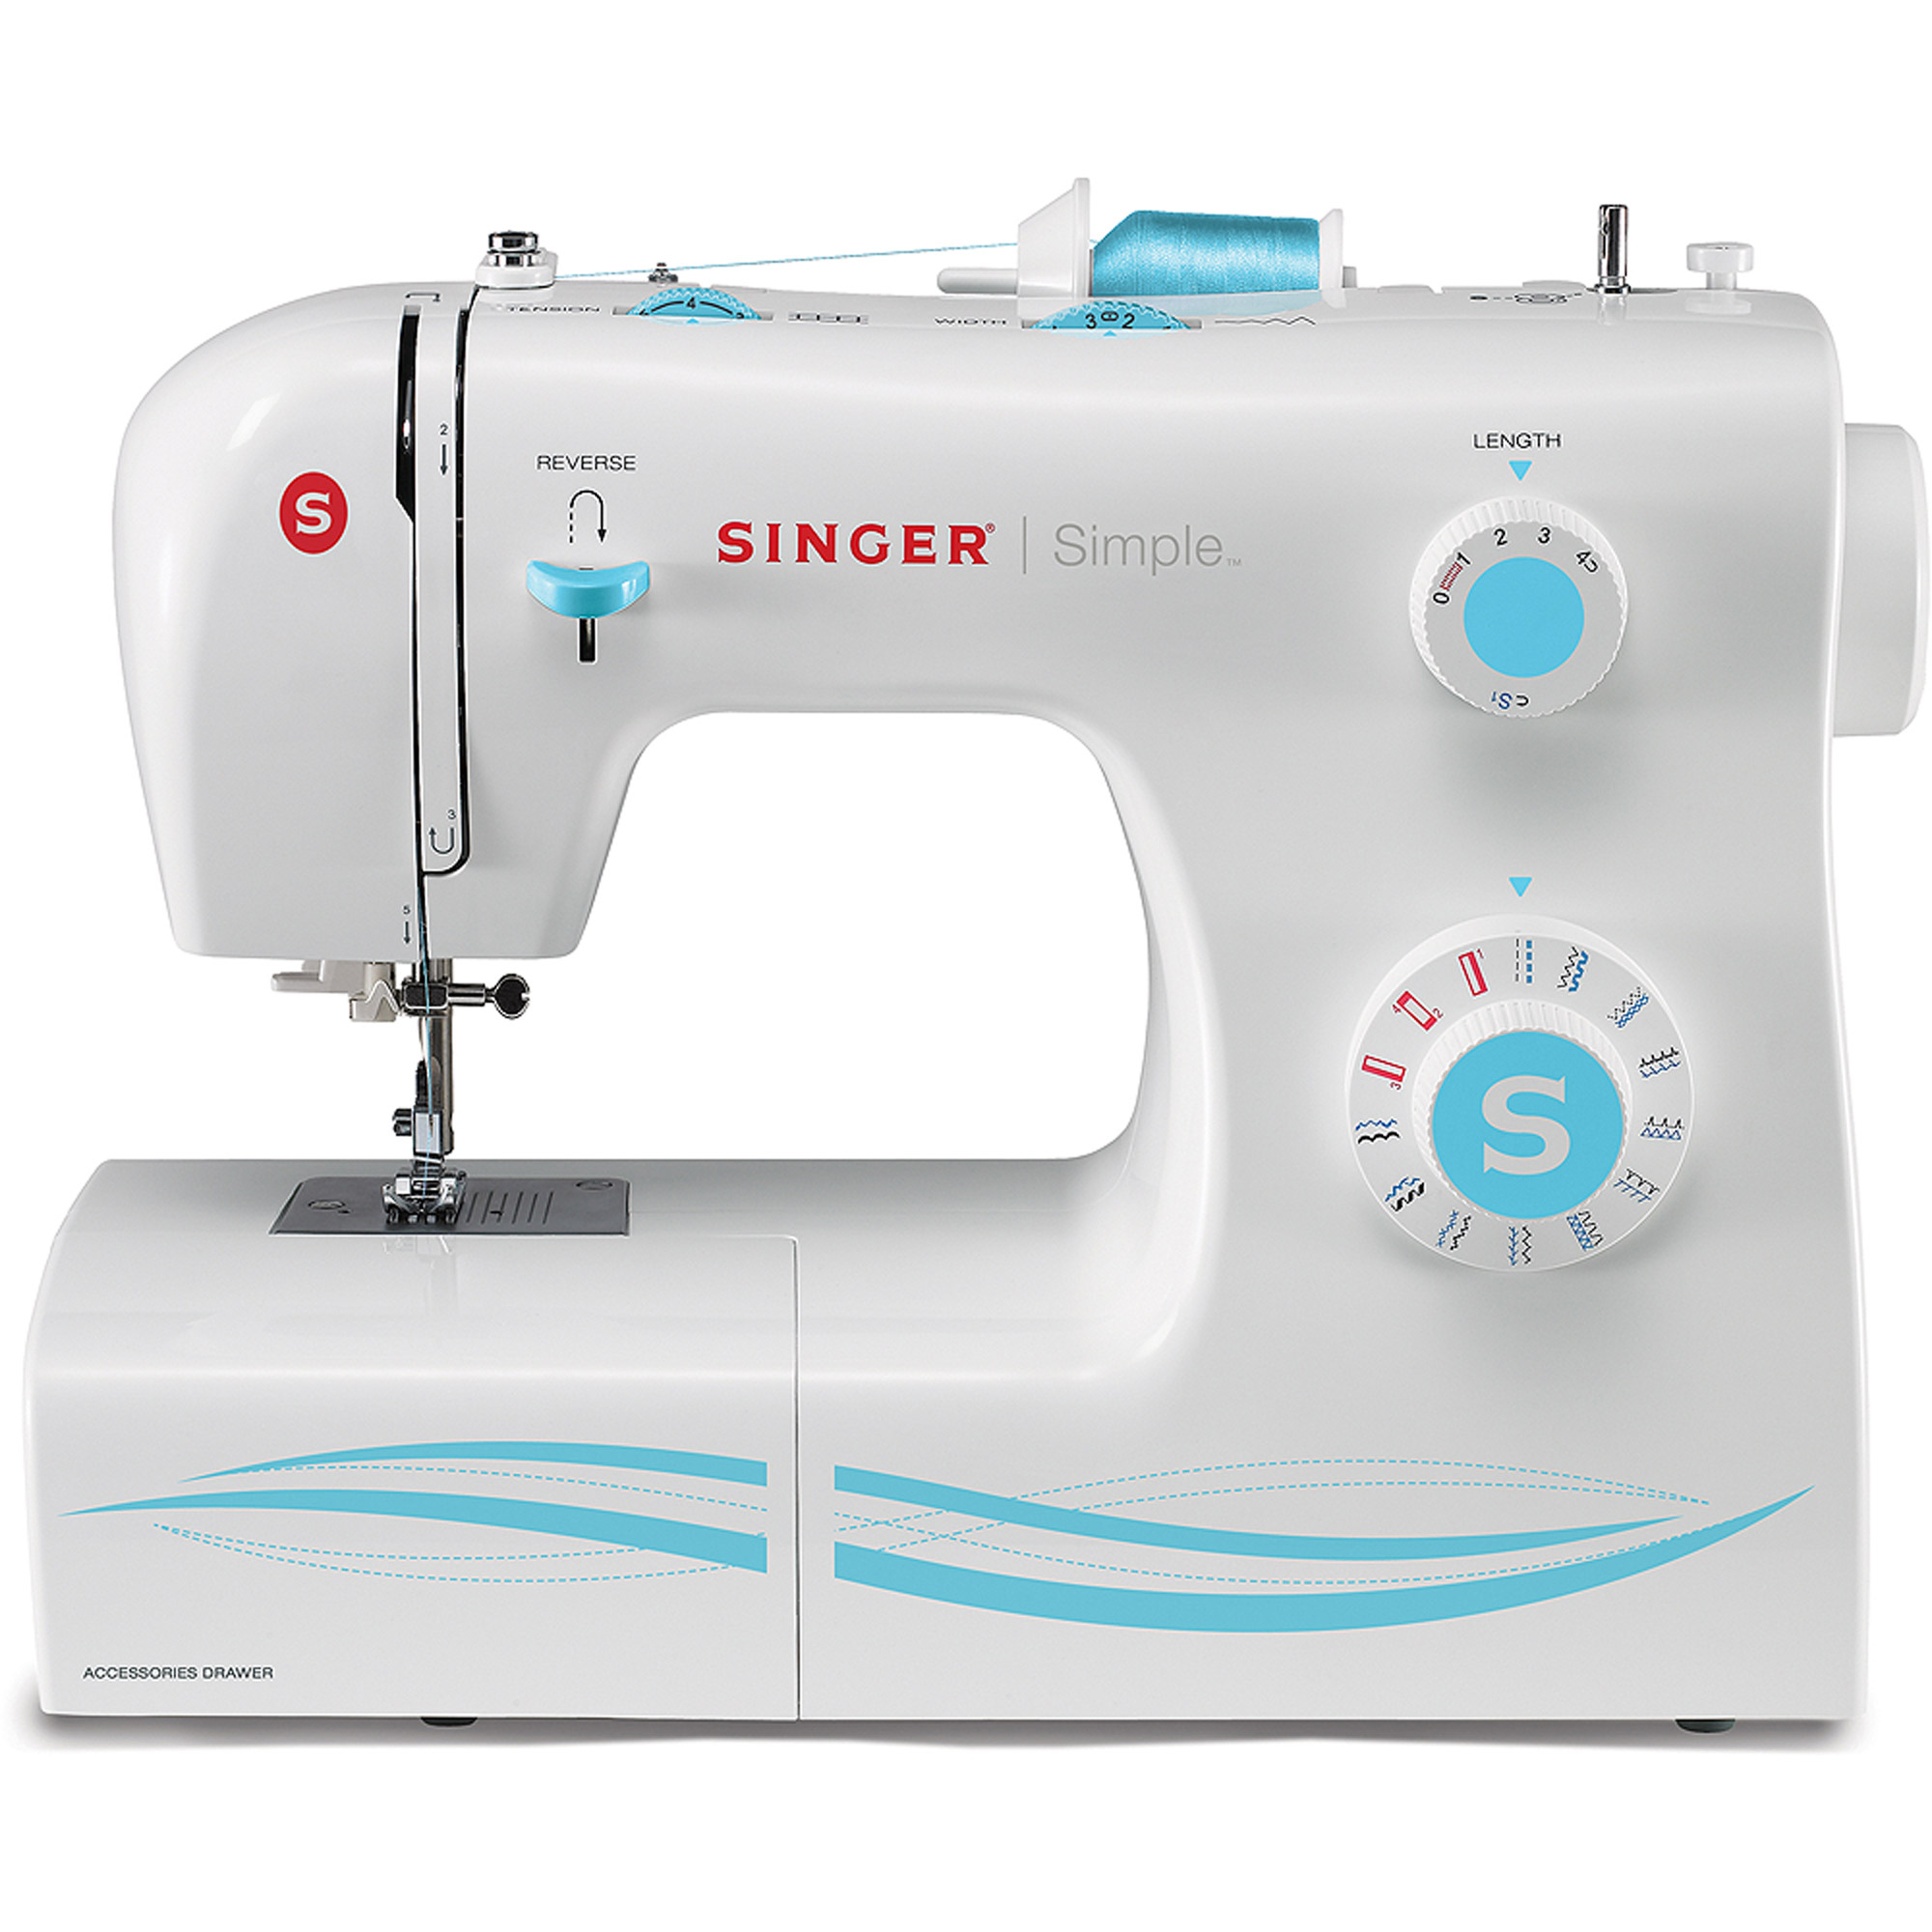 Singer 2263 Simple Factory Serviced 23-Stitch Sewing Machine with Accessories